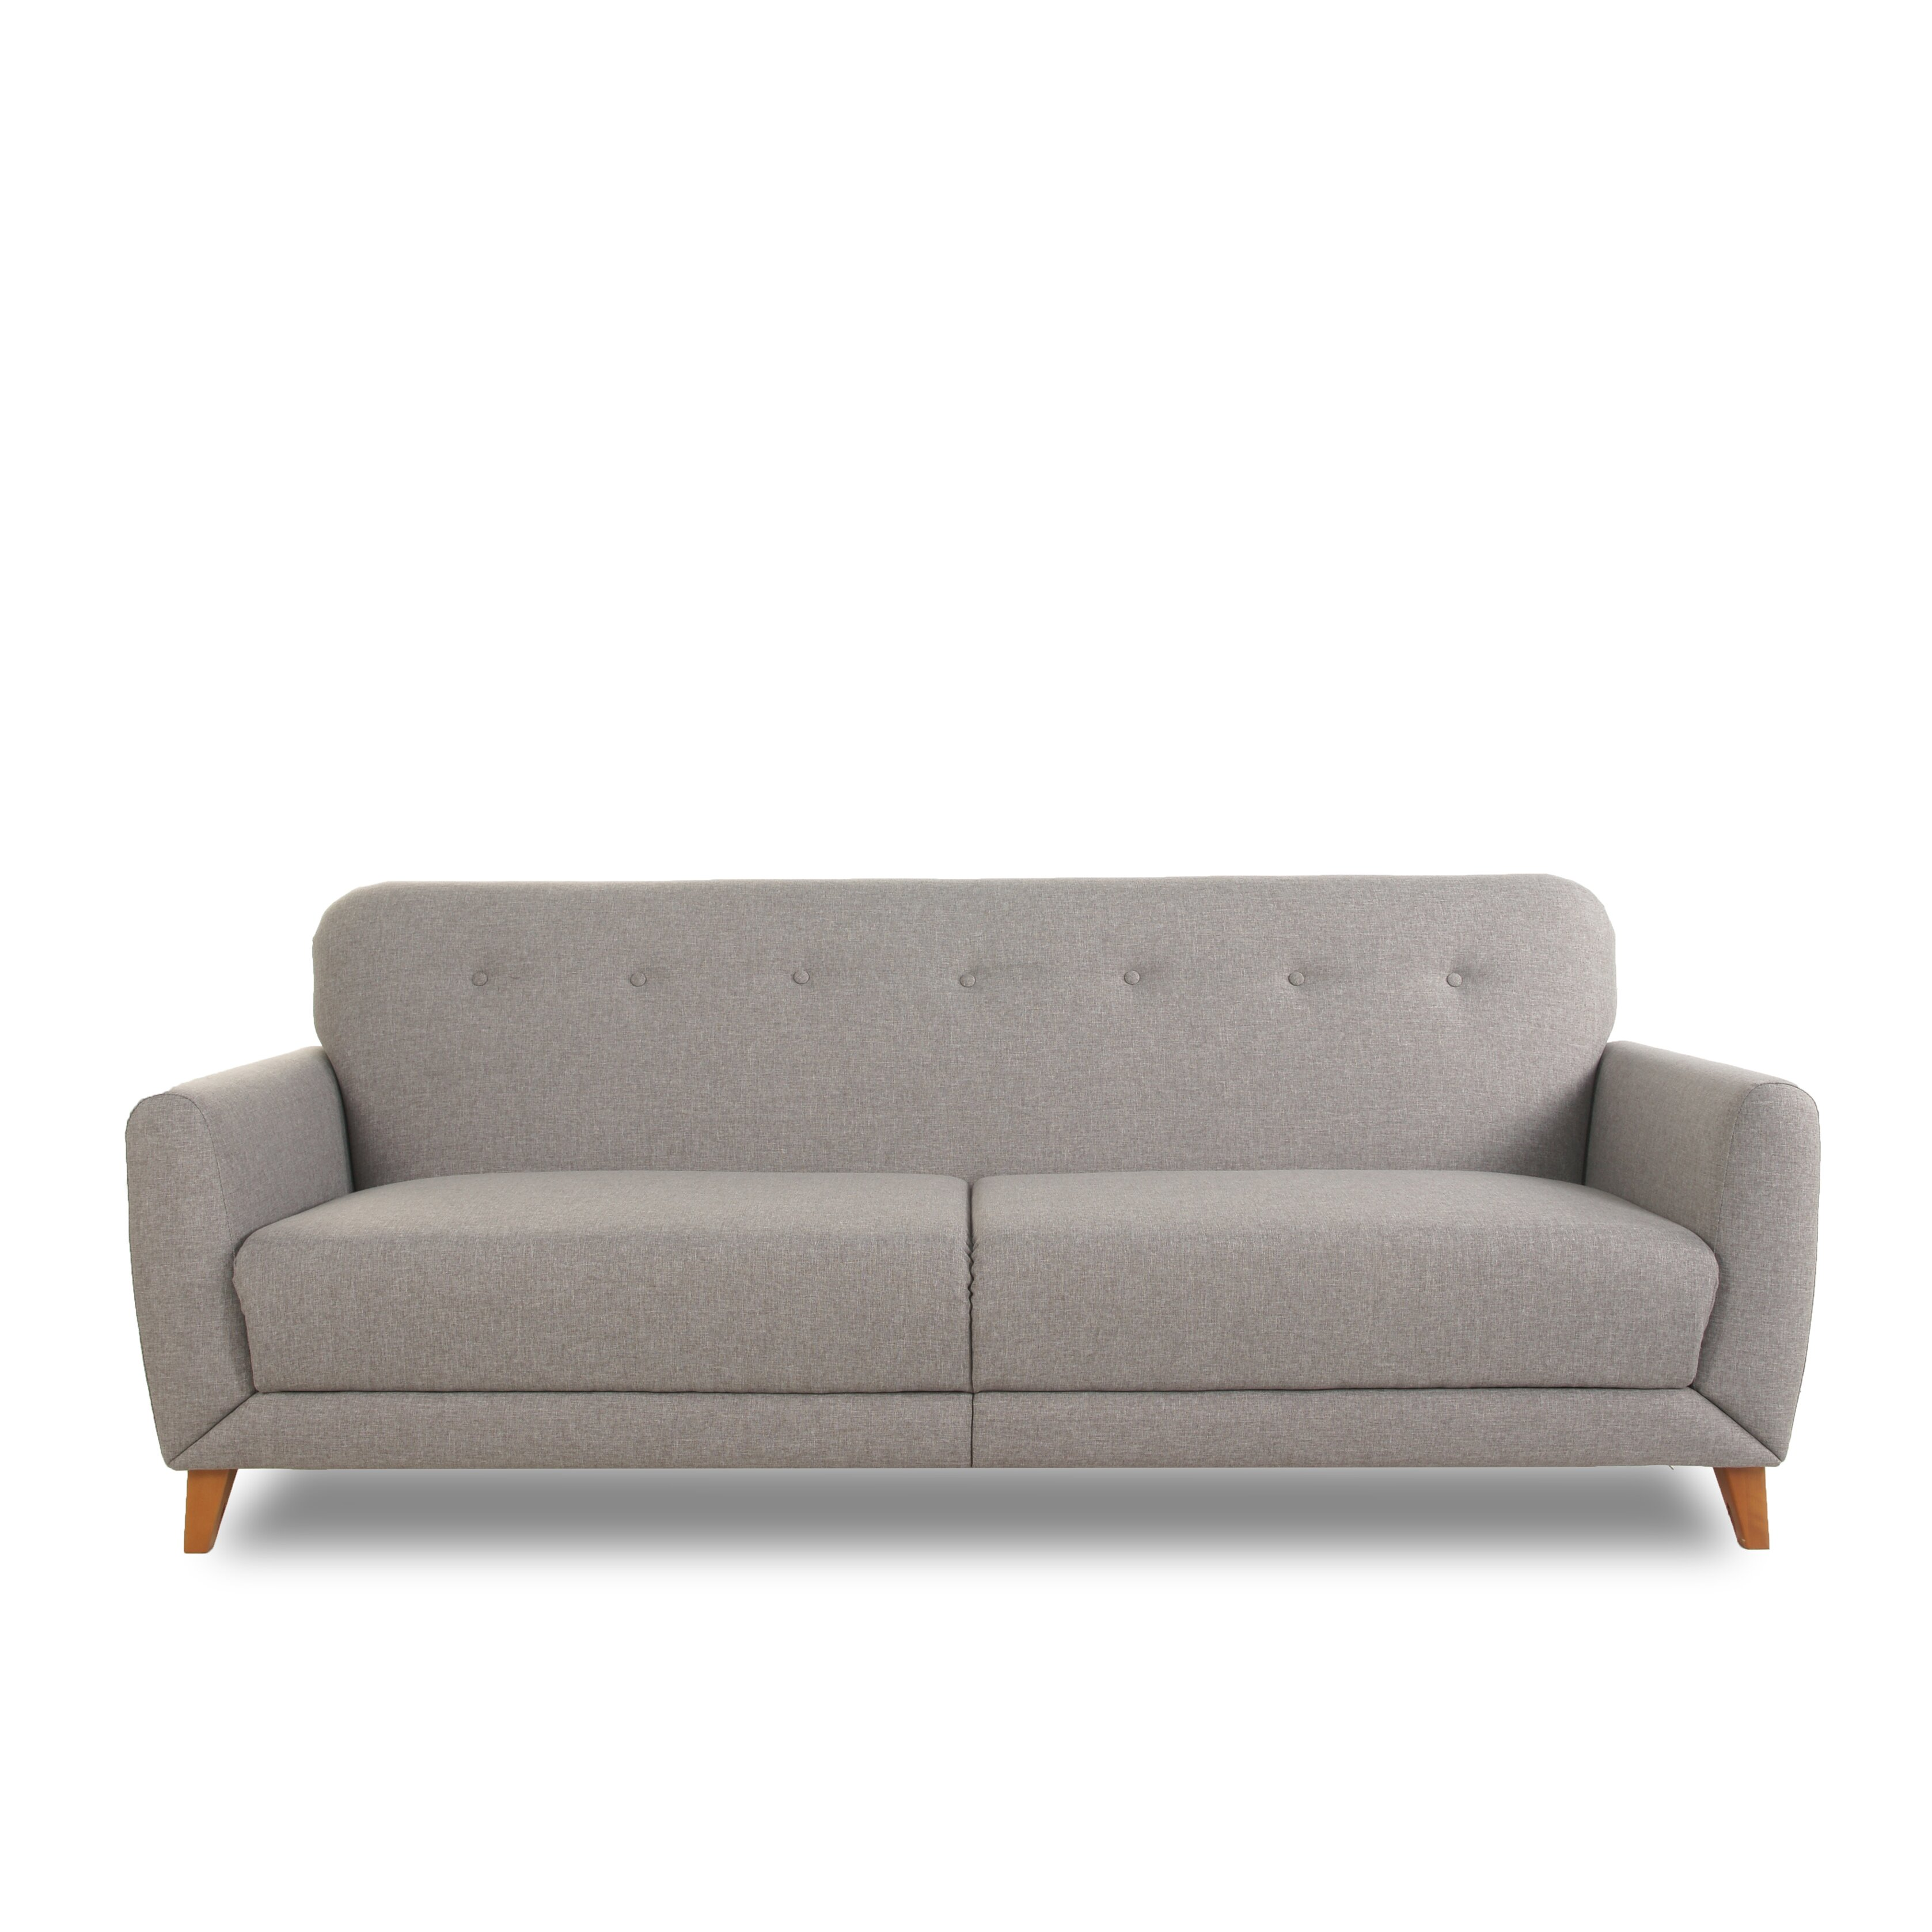 Leader Lifestyle Sydney 3 Seater Clic Clac Sofa Bed